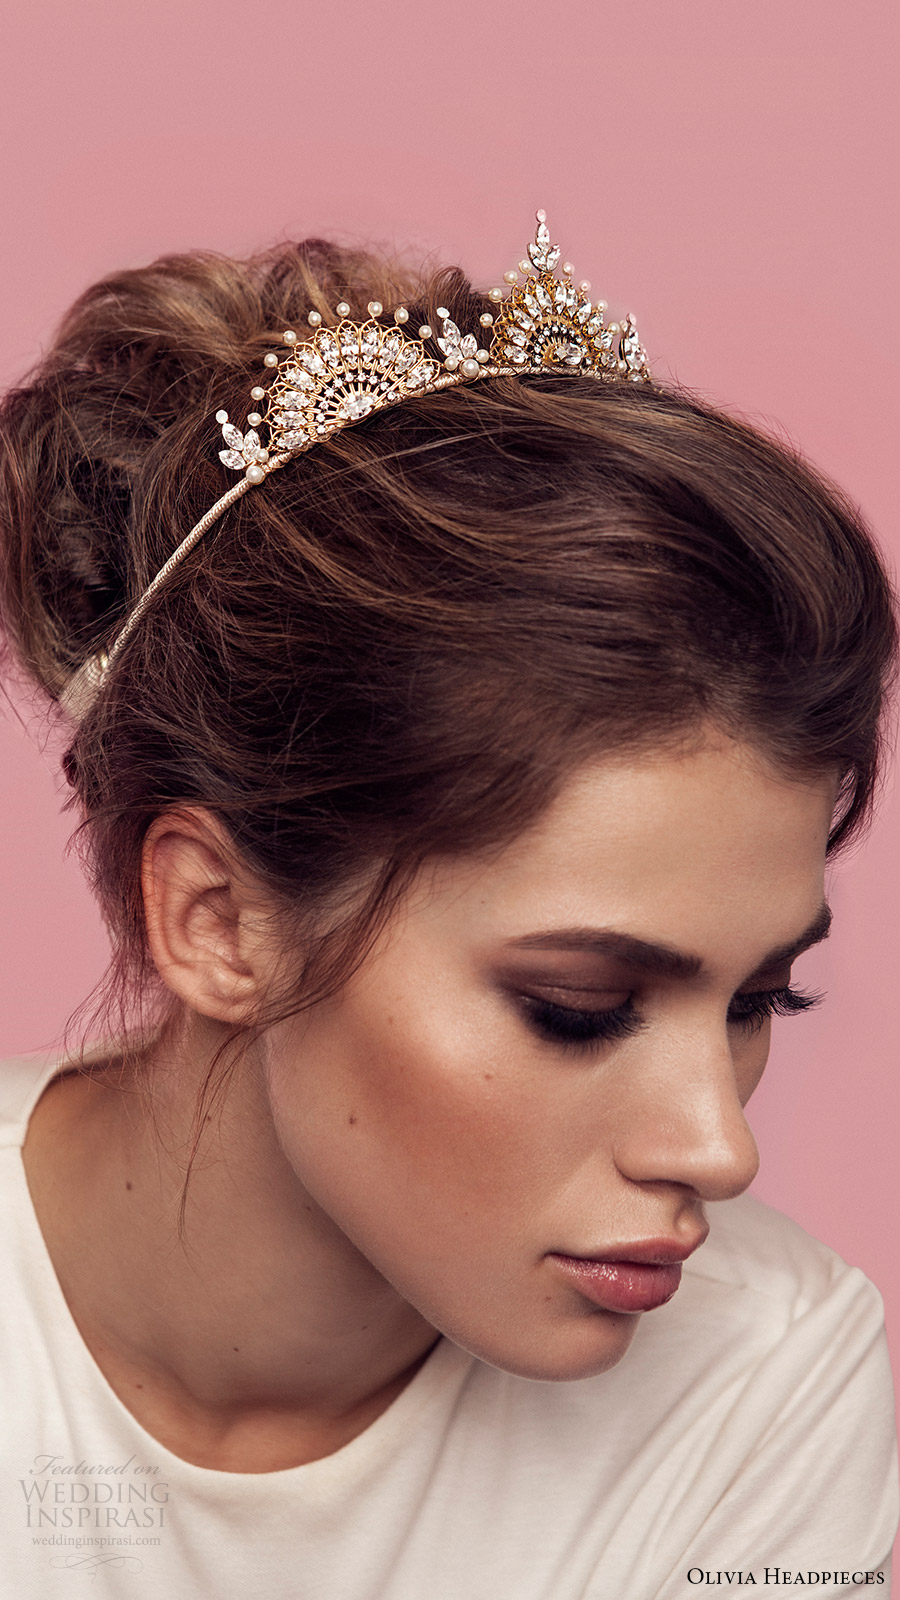 olivia headpieces 2017 bridal hair accessories victoria crown headband close up